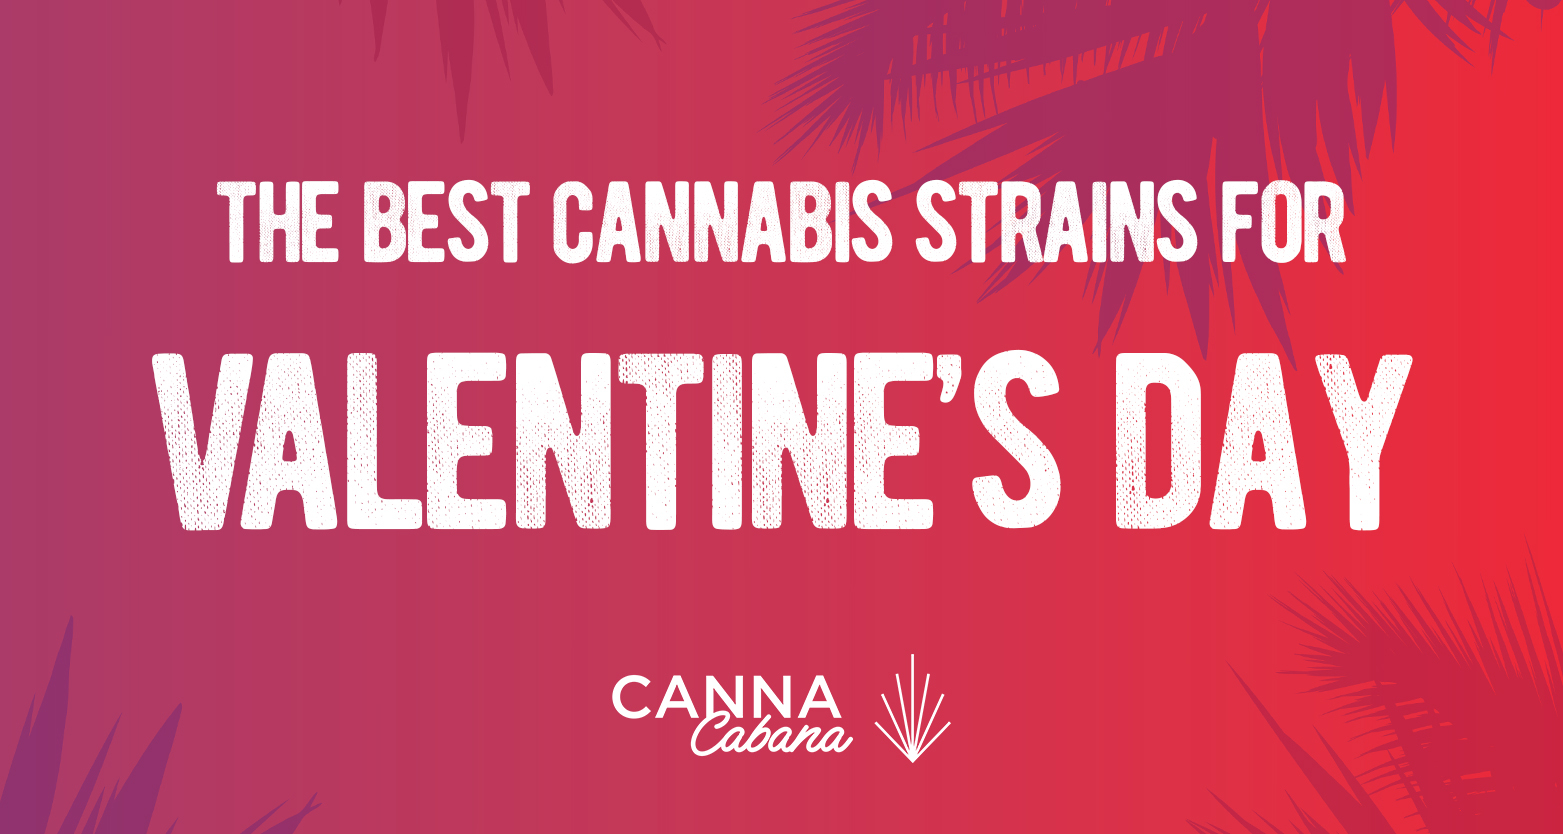 The Best Cannabis Strains for Valentine's Day 2021